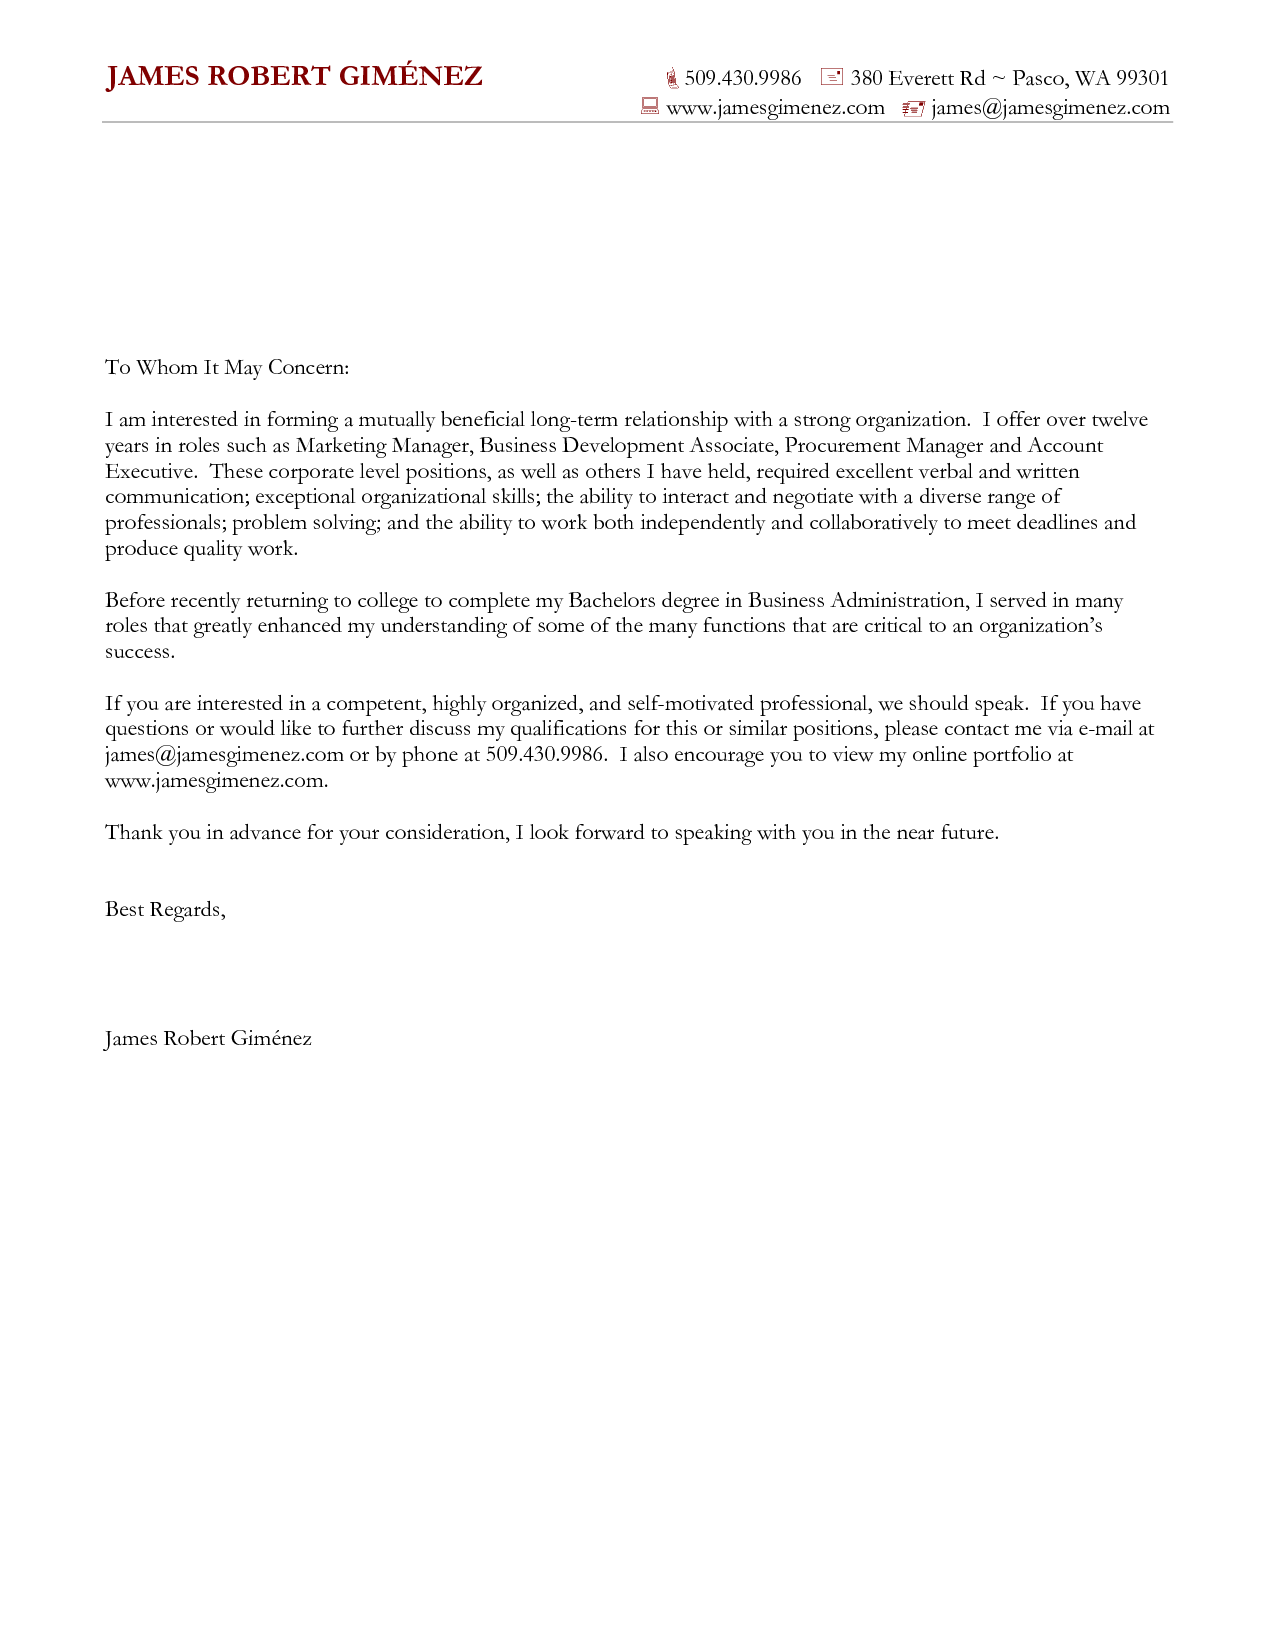 COVER LETTER FOR GENERAL APPLICATION Cover Letter GuideSimple Cover ...